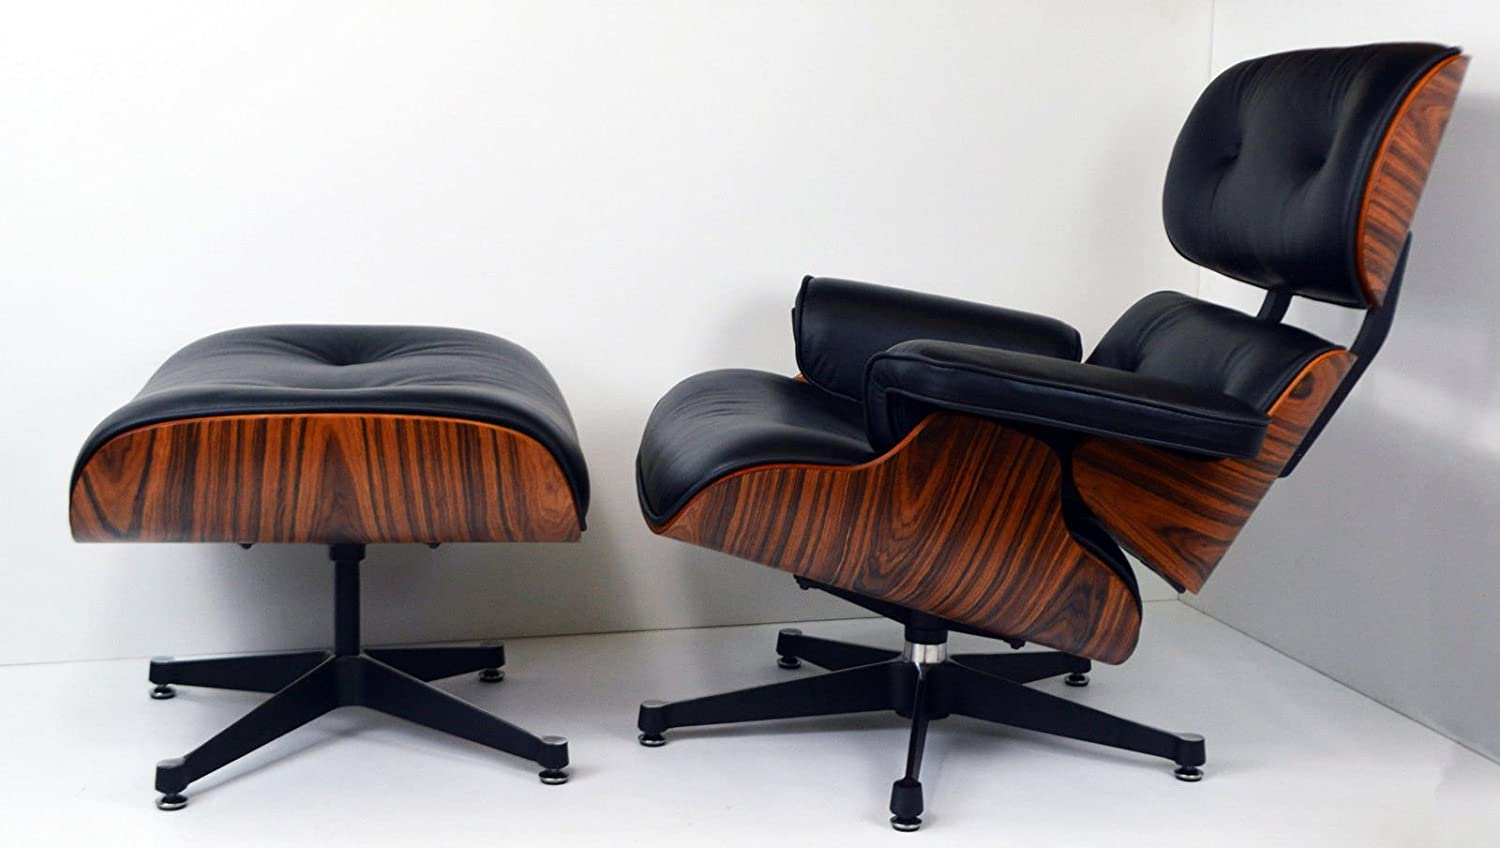 Charles Eames inspired Lounge Chair / Black Leather Light Rosewood With Ottoman by Charles Eames